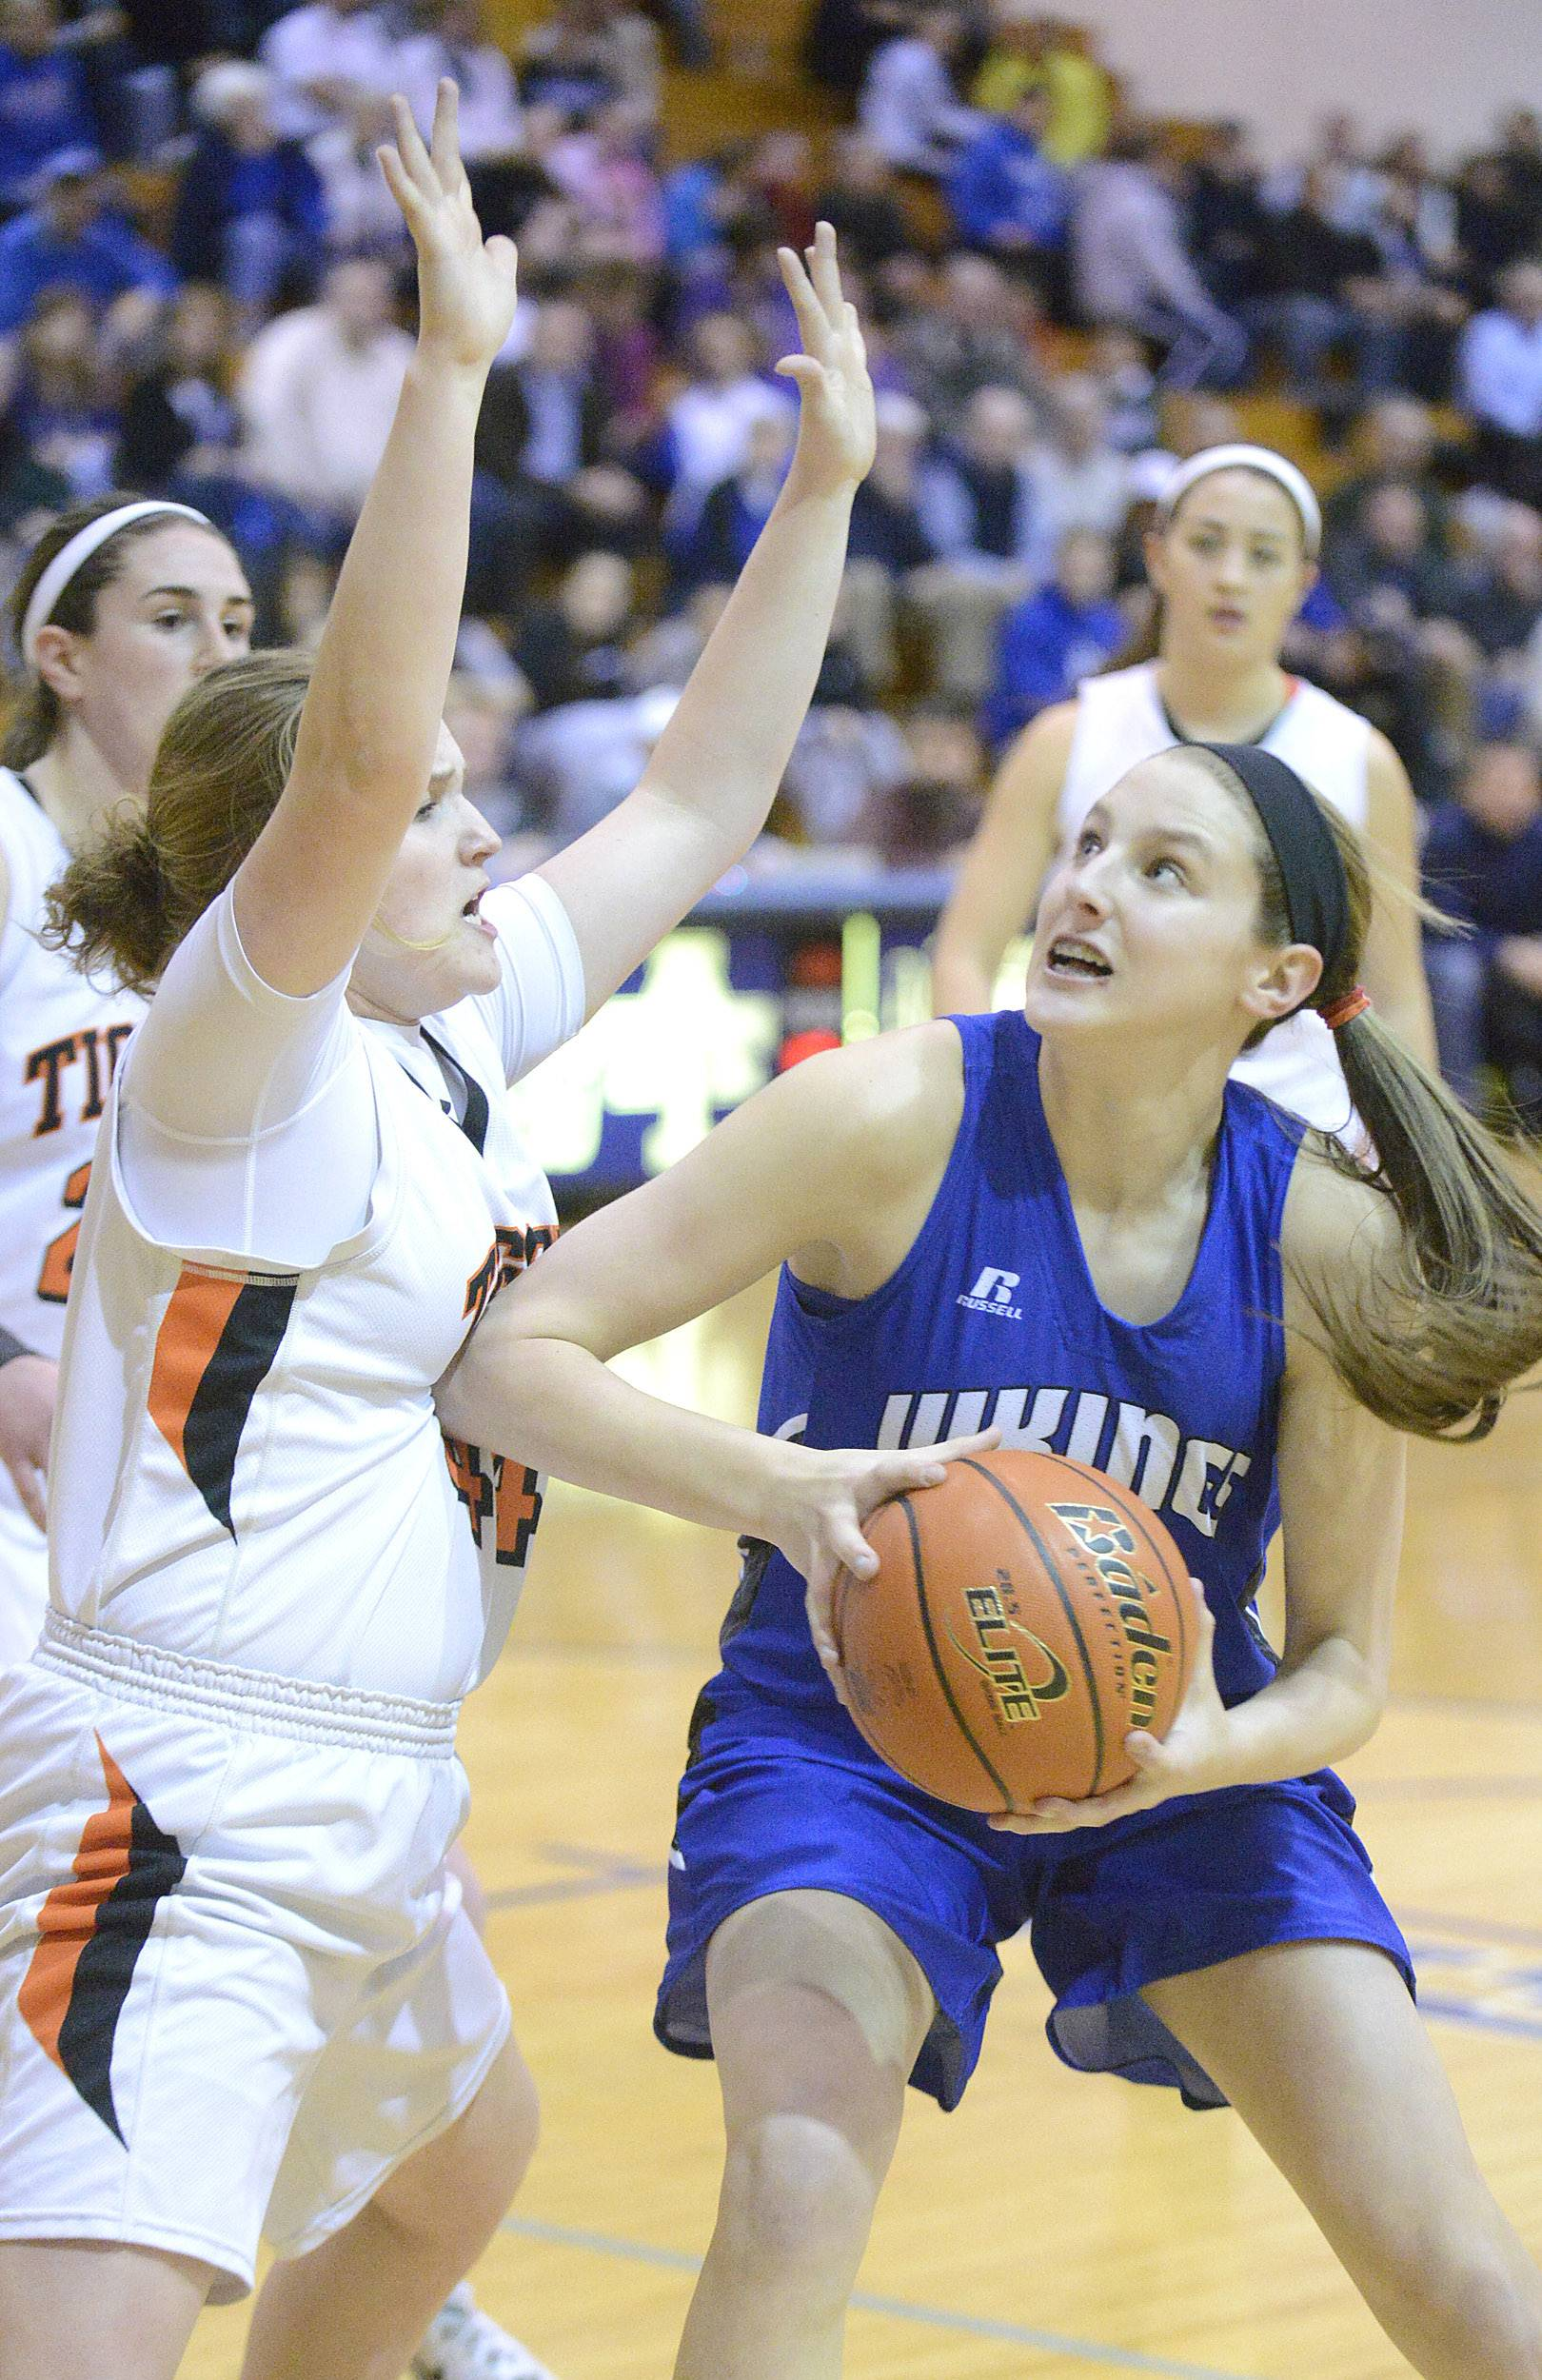 Wheaton Warrenville South's Olivia Linebarger attempts to block a shot by Geneva's Grace Loberg in the first quarter.